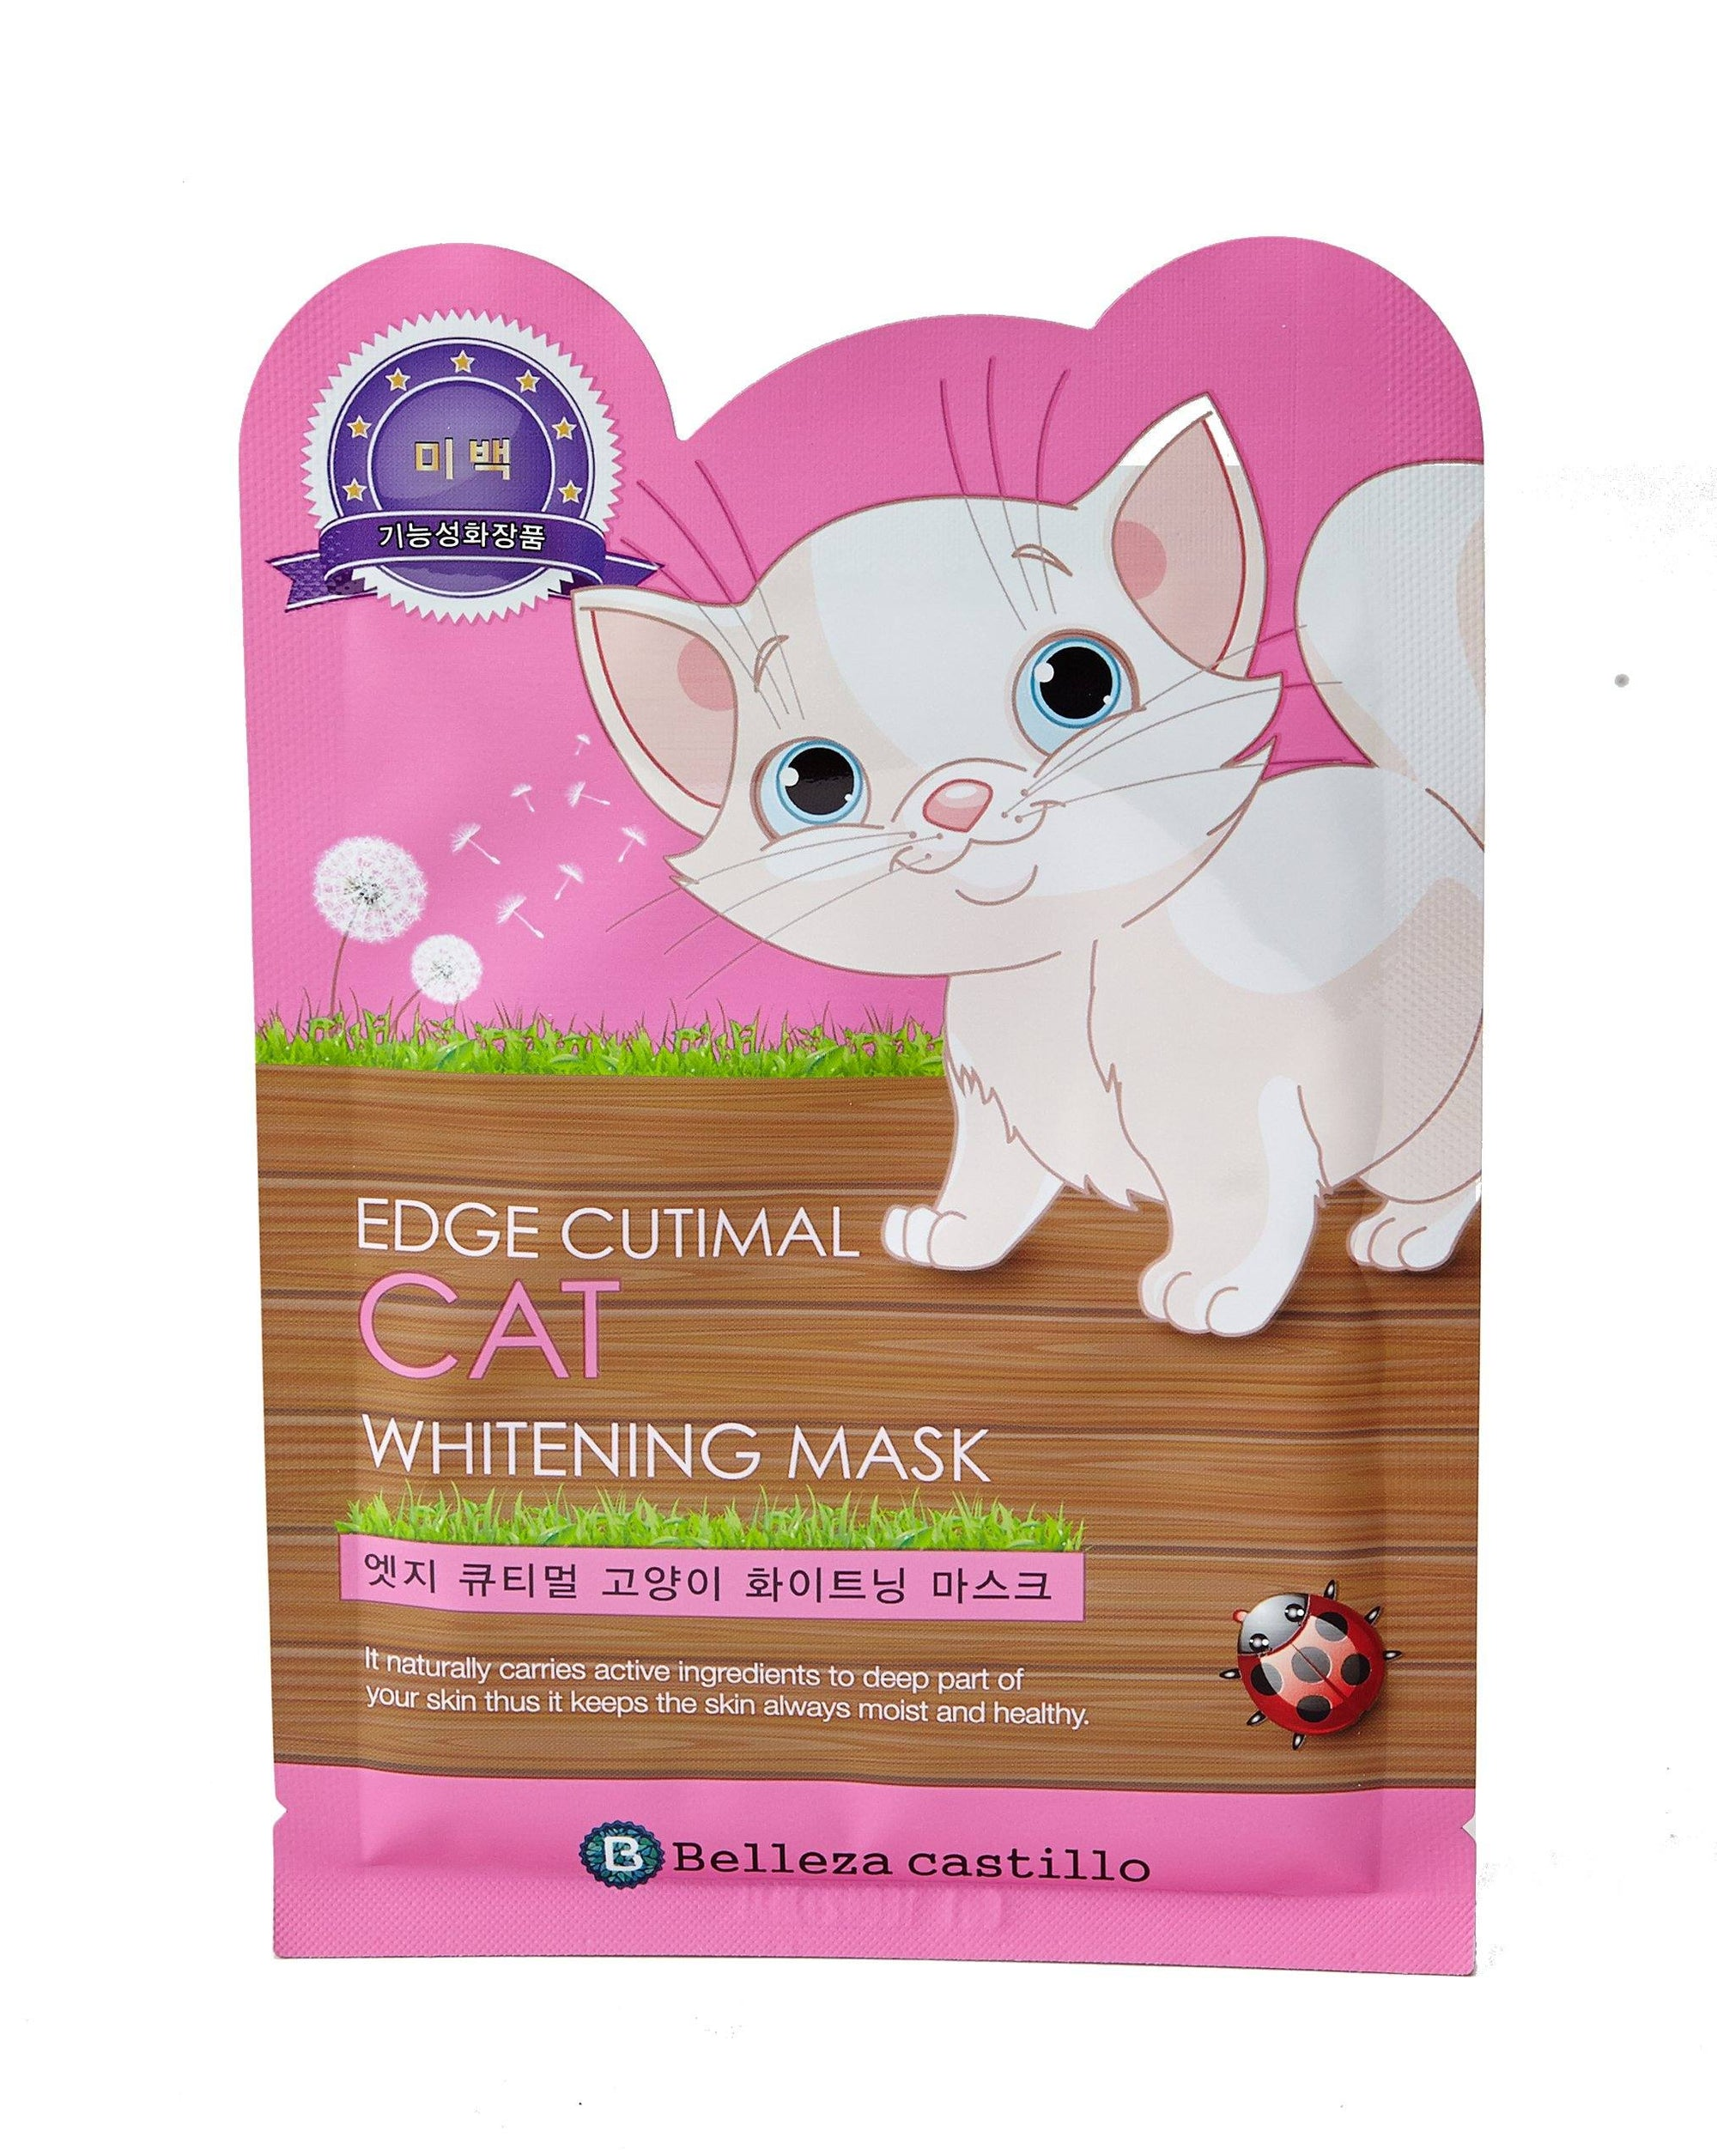 Health & Beauty > Personal Care > Cosmetics > Skin Care > Compressed Skin Care Mask Sheets - Edge Cutimal CAT Whitening Mask Maska W Płachcie